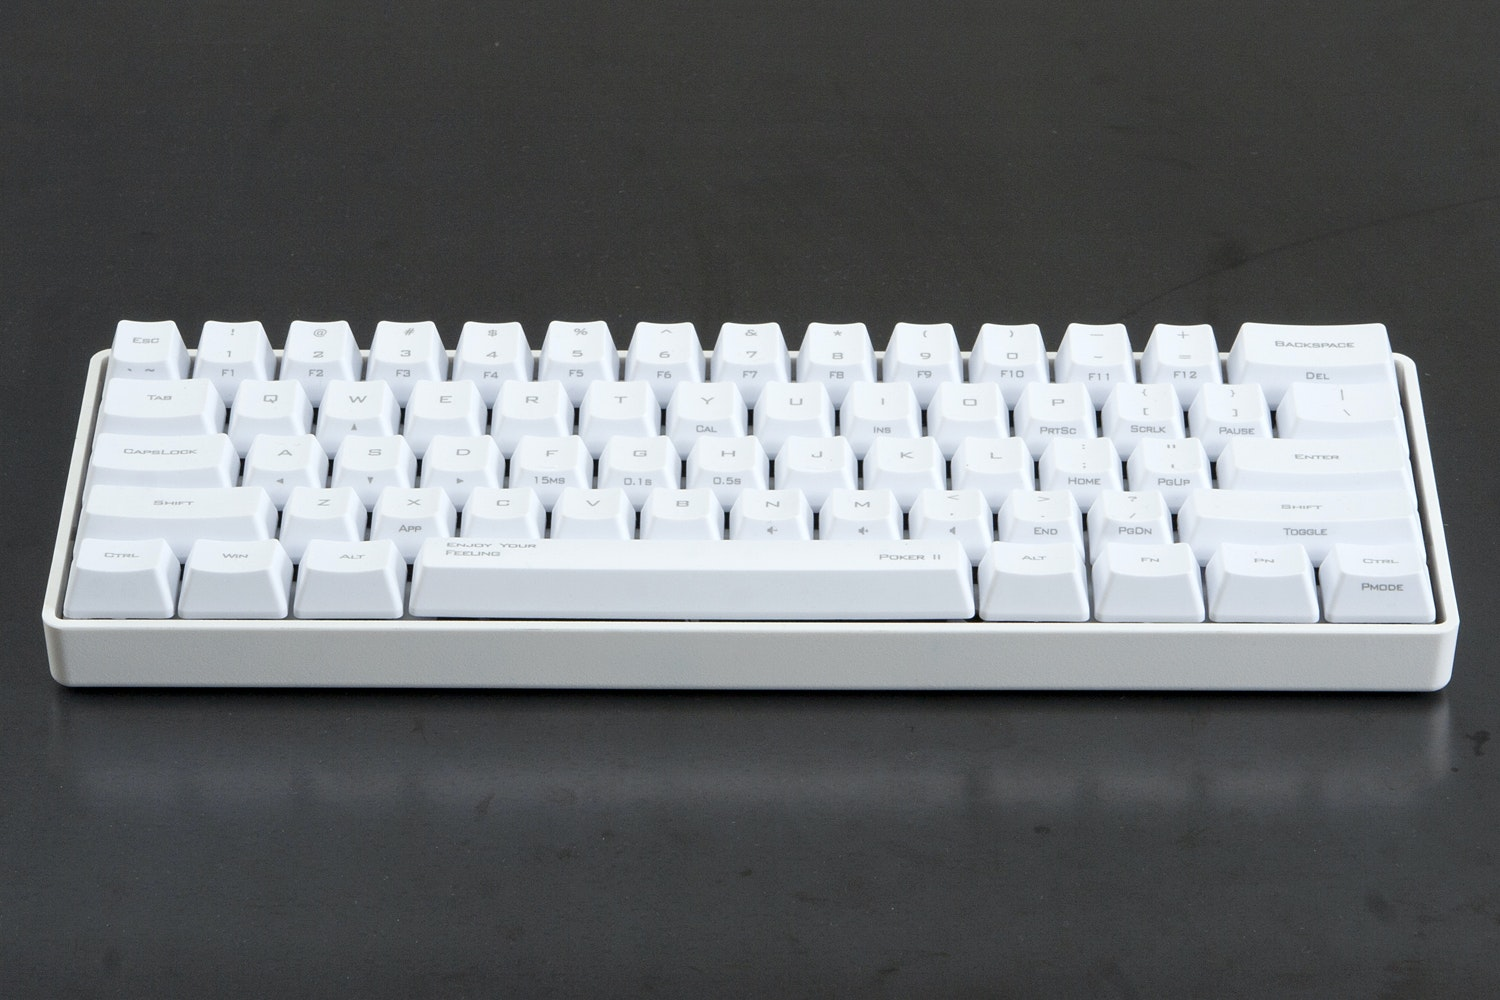 Vortex Poker II Compact Keyboard